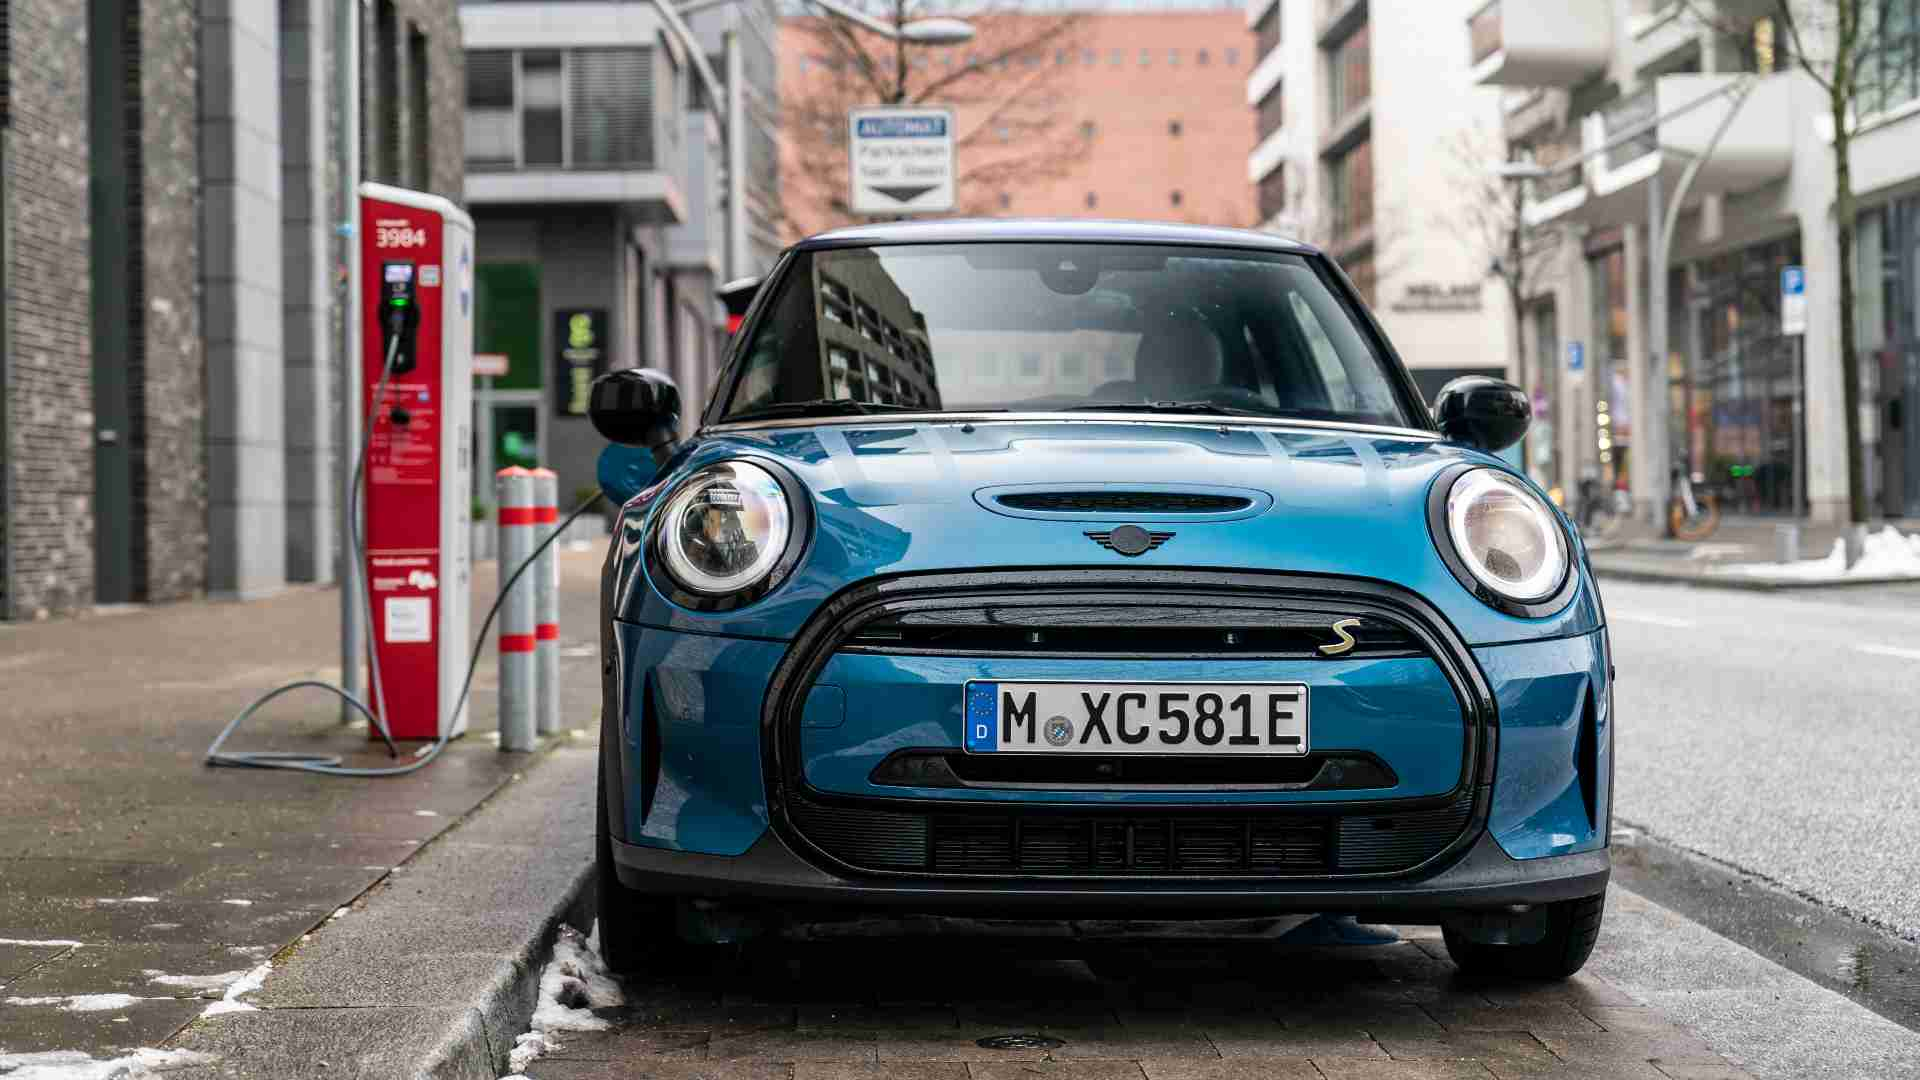 Mini to go all-electric by the 'early 2030s', will roll out its final new ICE model in 2025- Technology News, FP